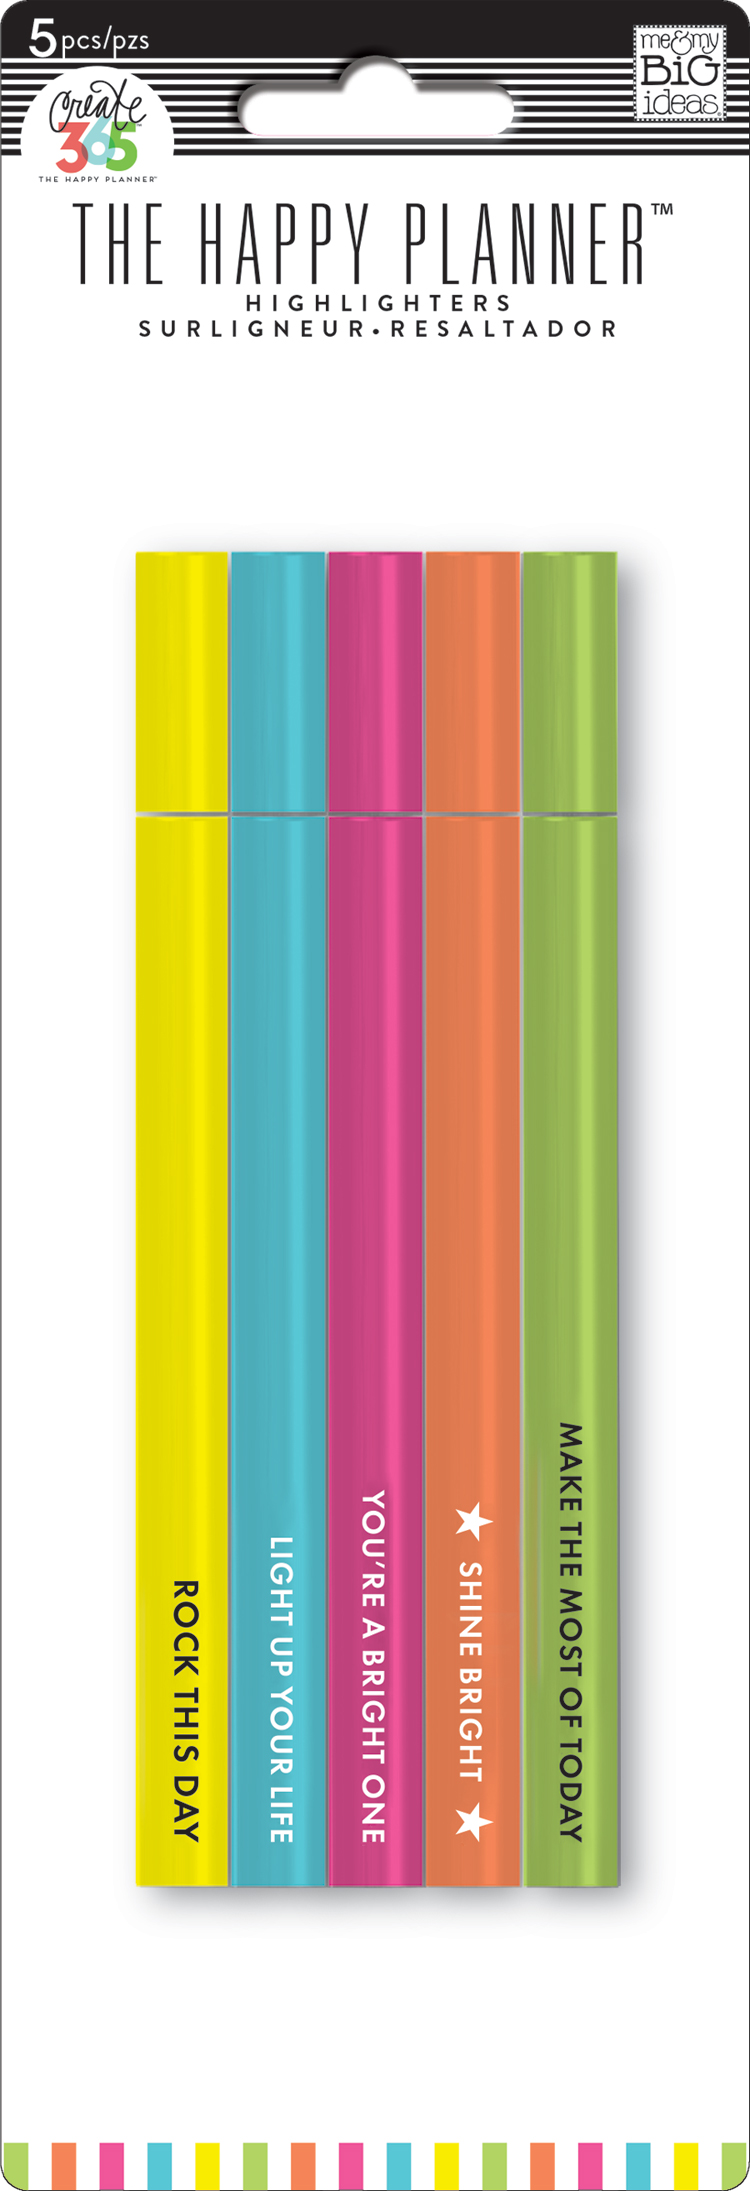 'Shine Bright' Highlighters for The Happy Planner™   me & my BIG ideas.jpg